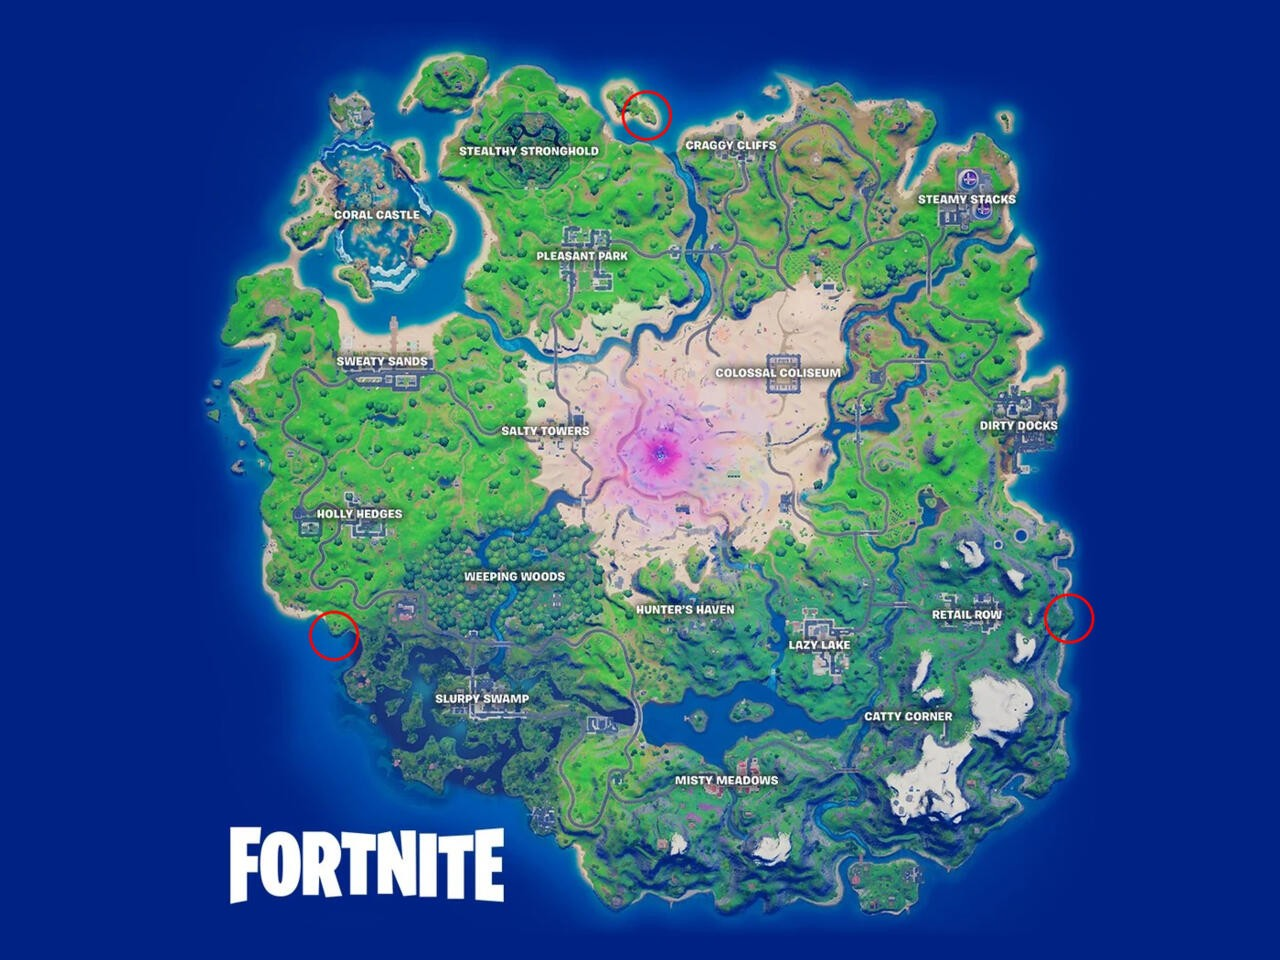 Fortnite Secret places season 5 week 9